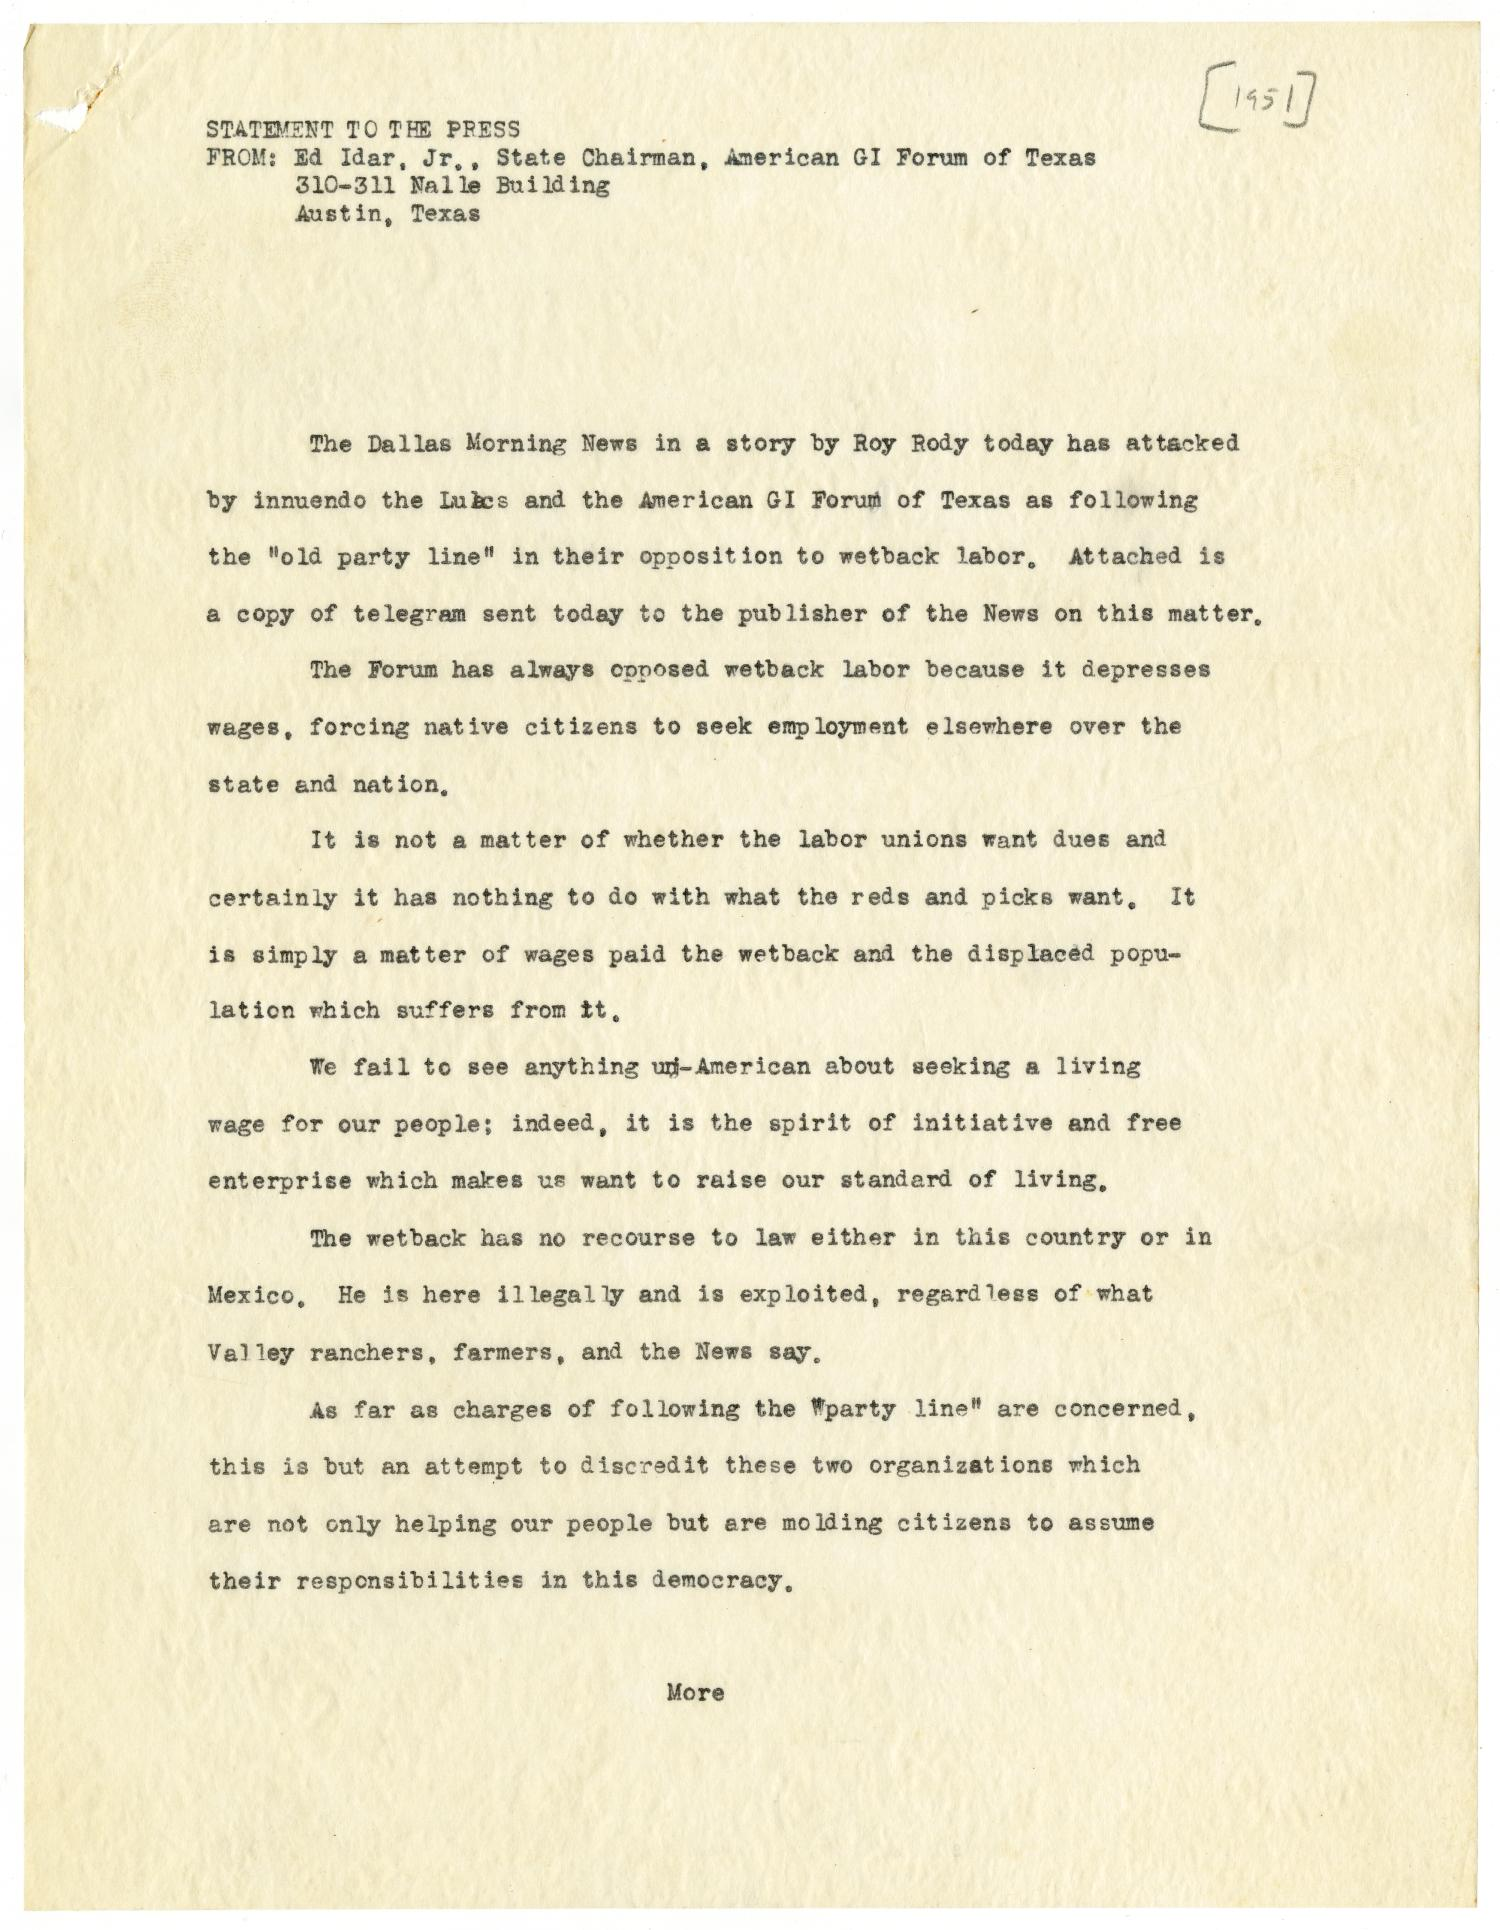 [Press statement and telegram from Ed Idar, Jr., to E. M. Dealey - 1951]                                                                                                      [Sequence #]: 1 of 6